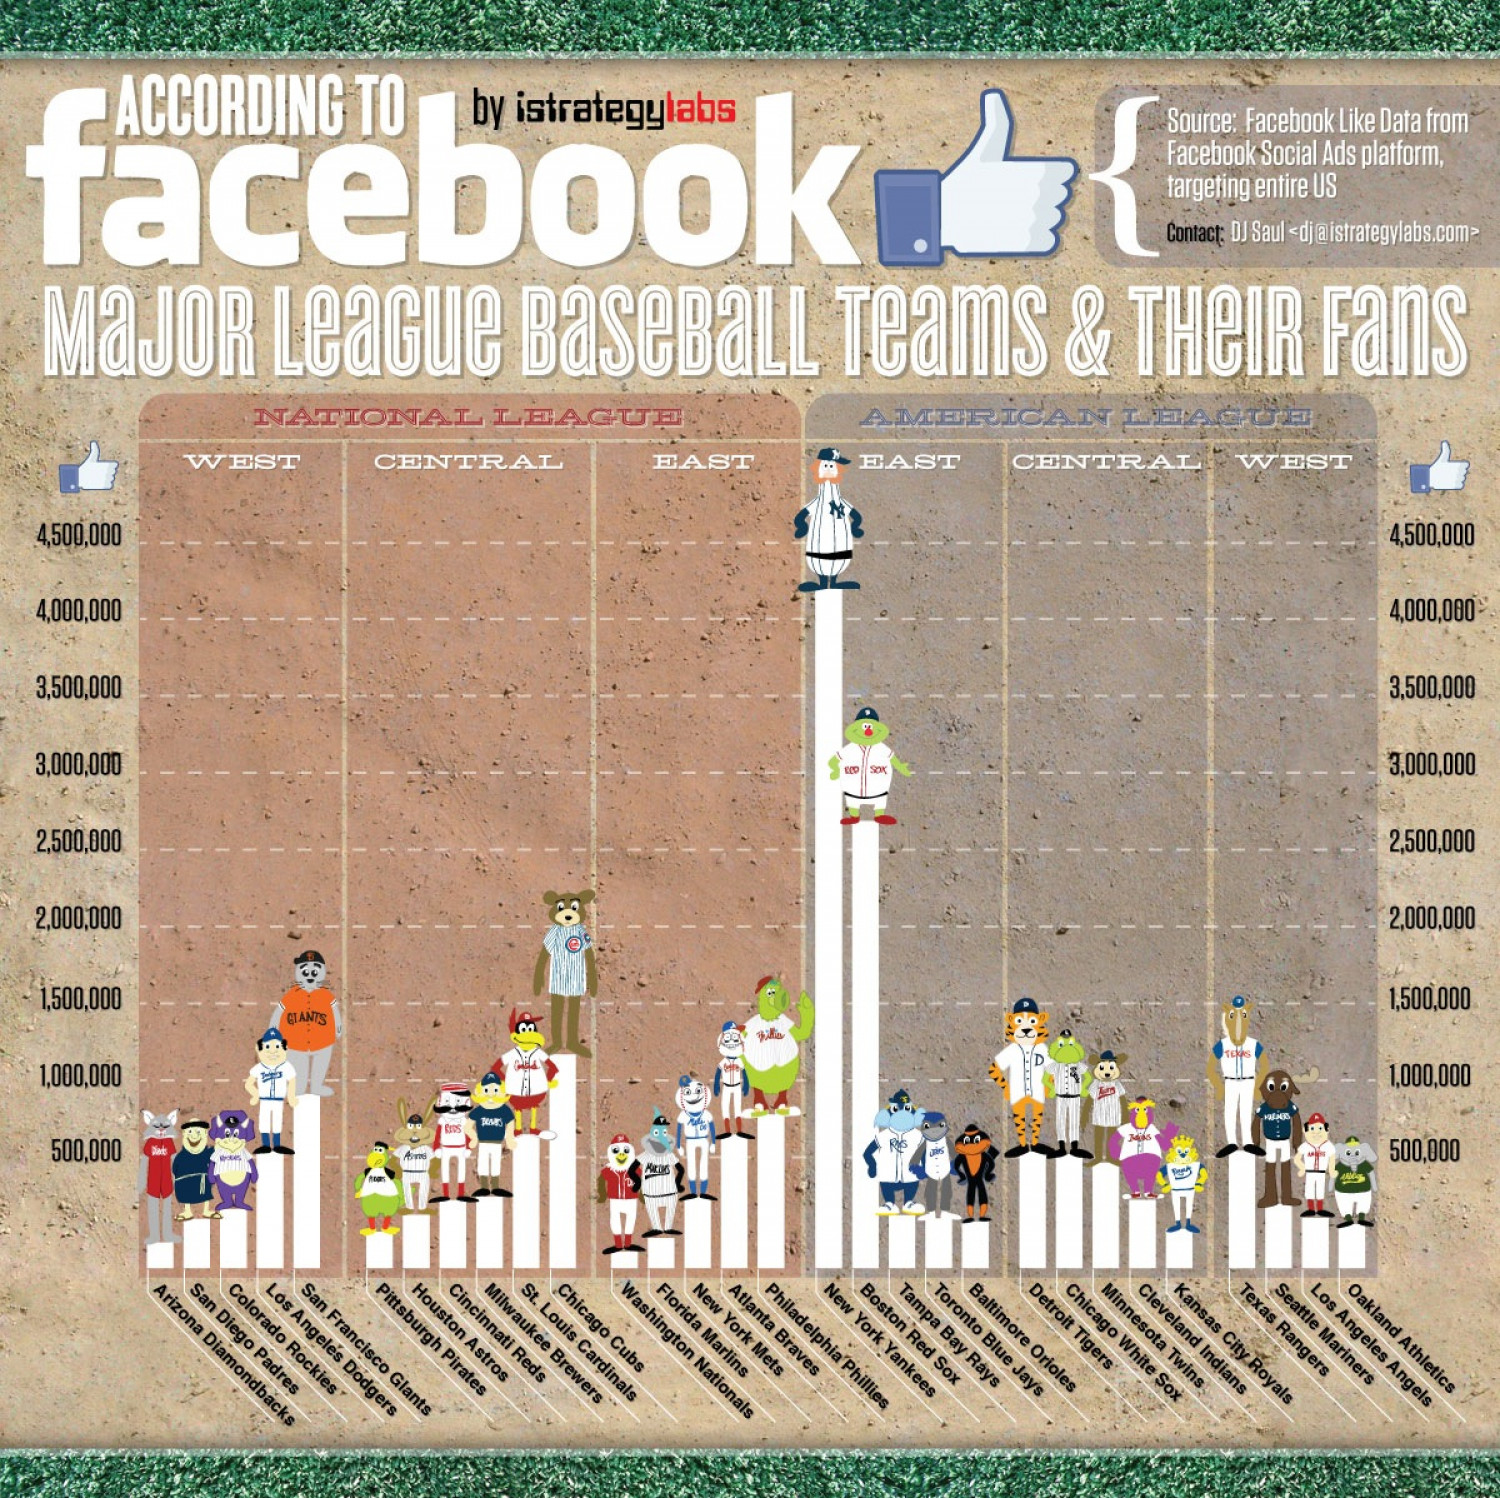 MLB Baseball Teams & Fans Accroding to Facebook Infographic